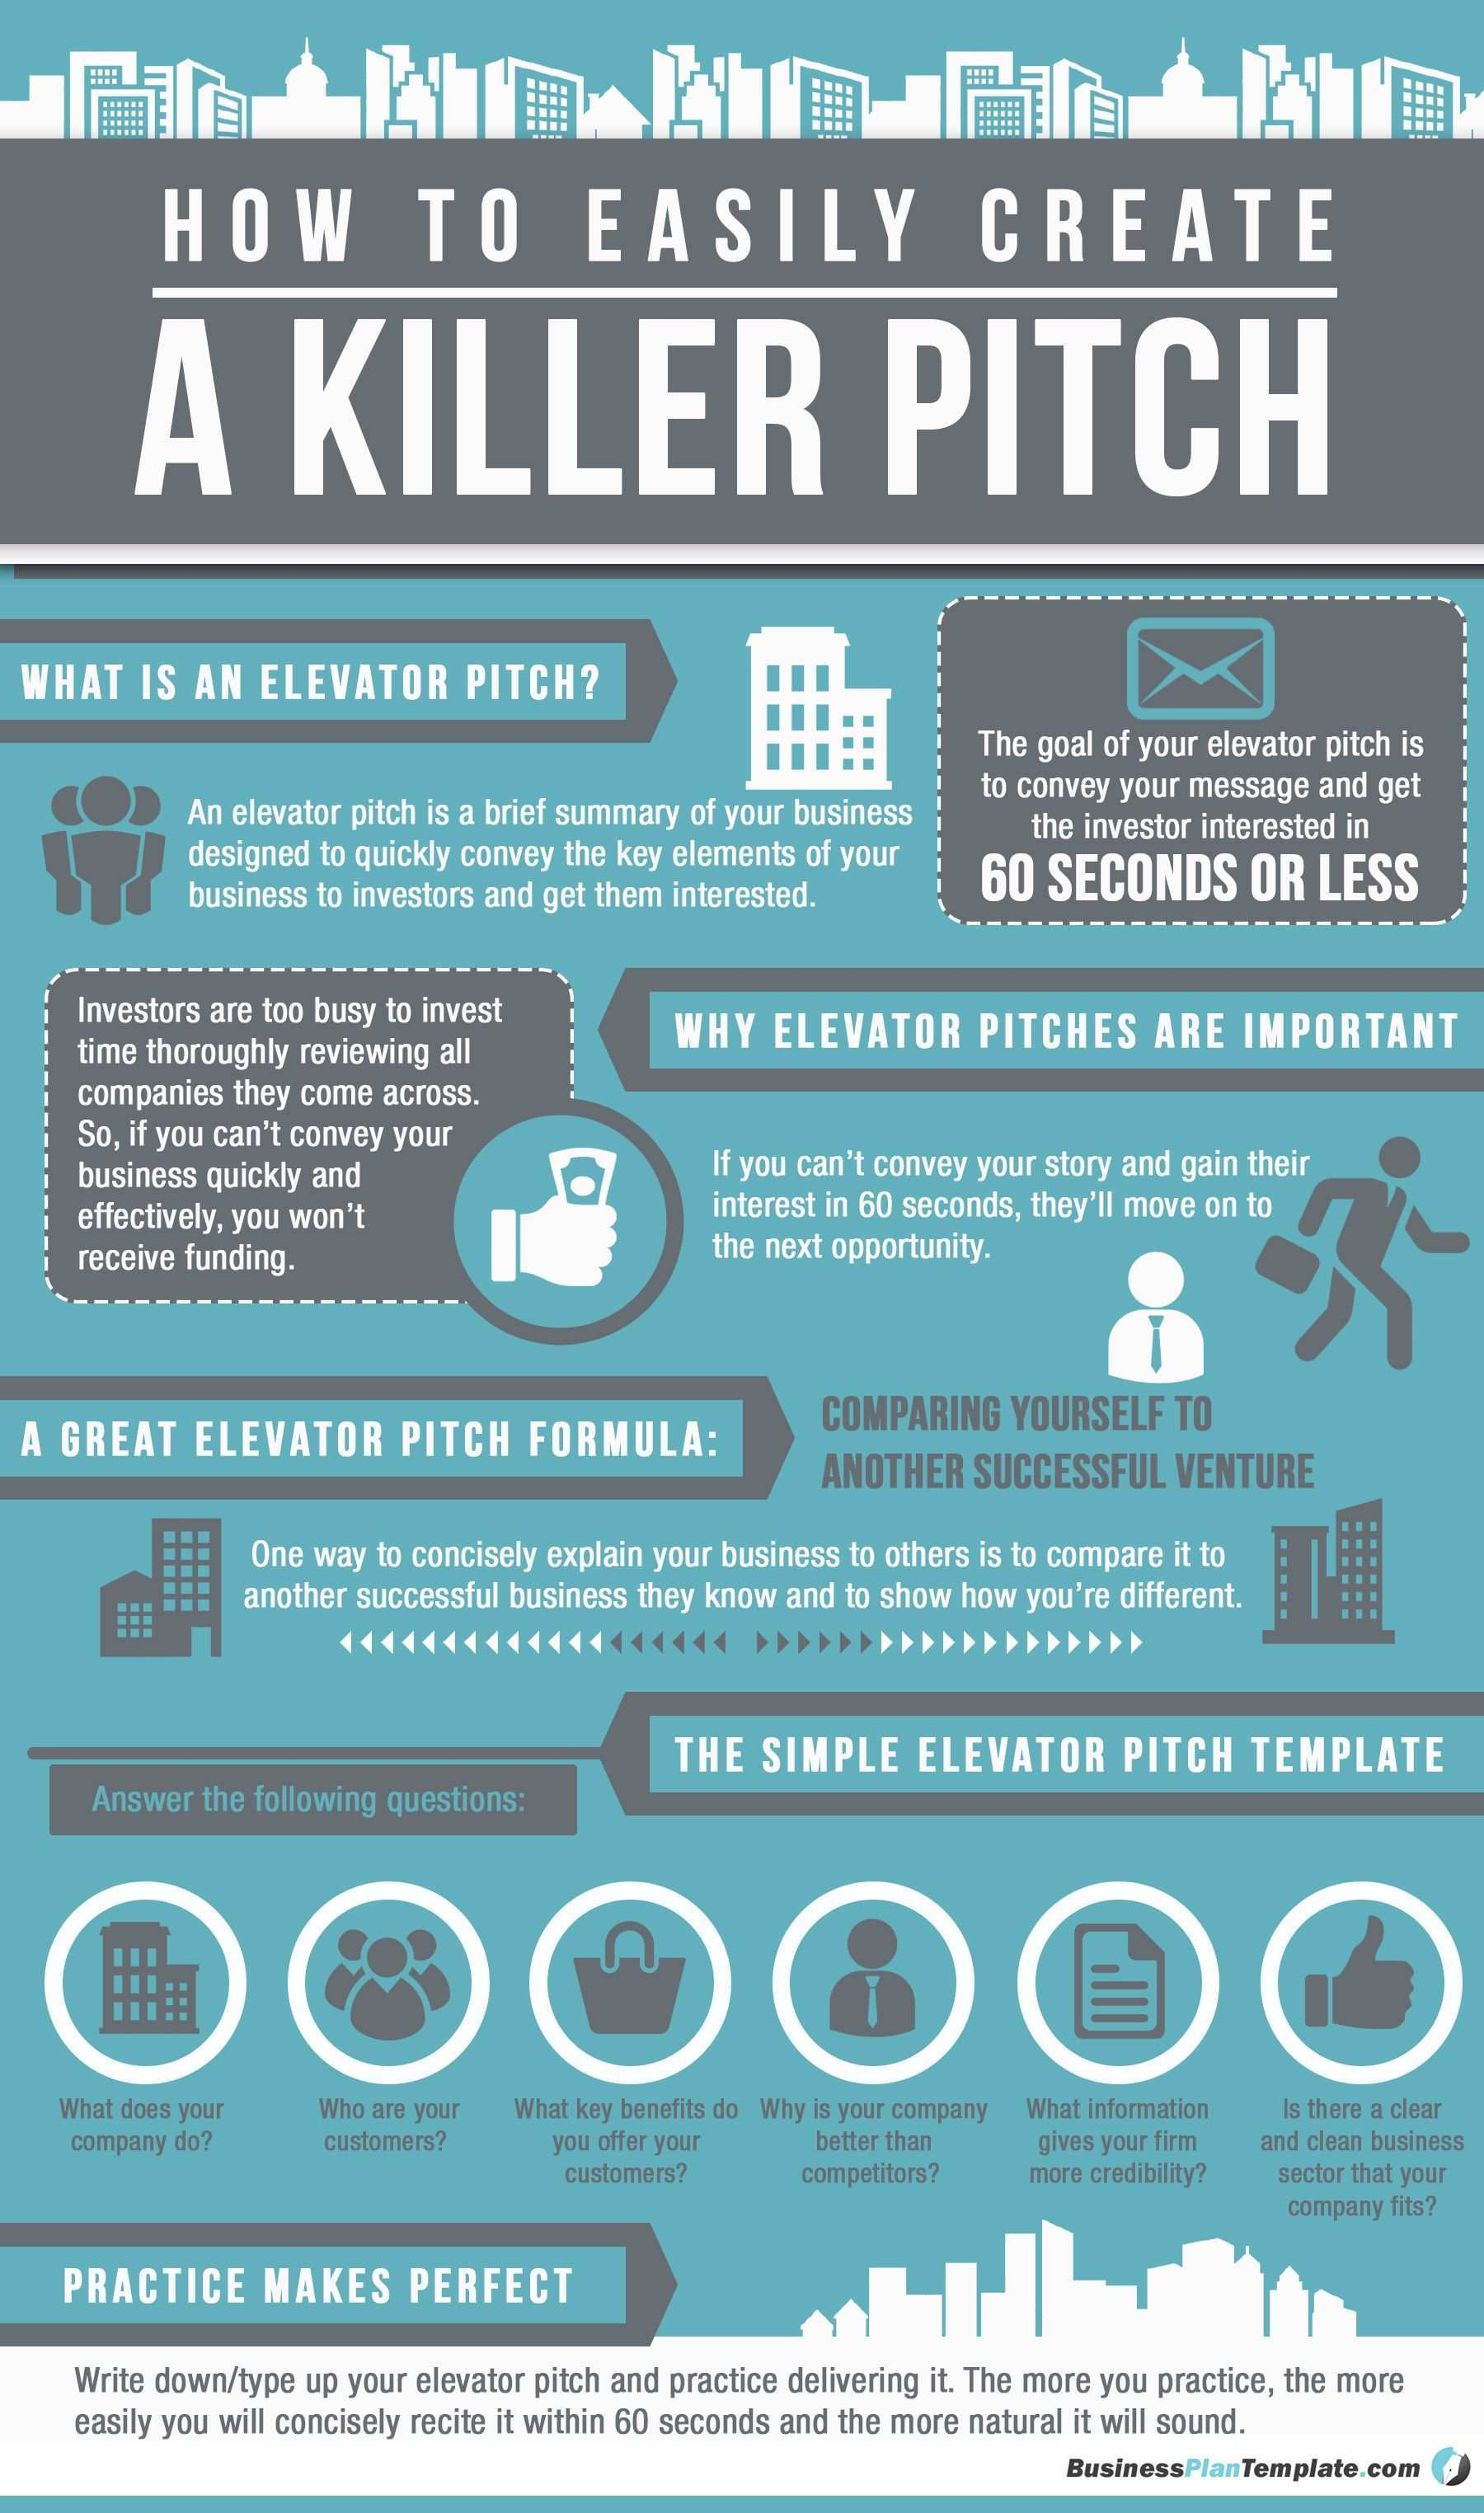 Elevator Pitch Template Infographic Business Infographic Business Management Business Pitch